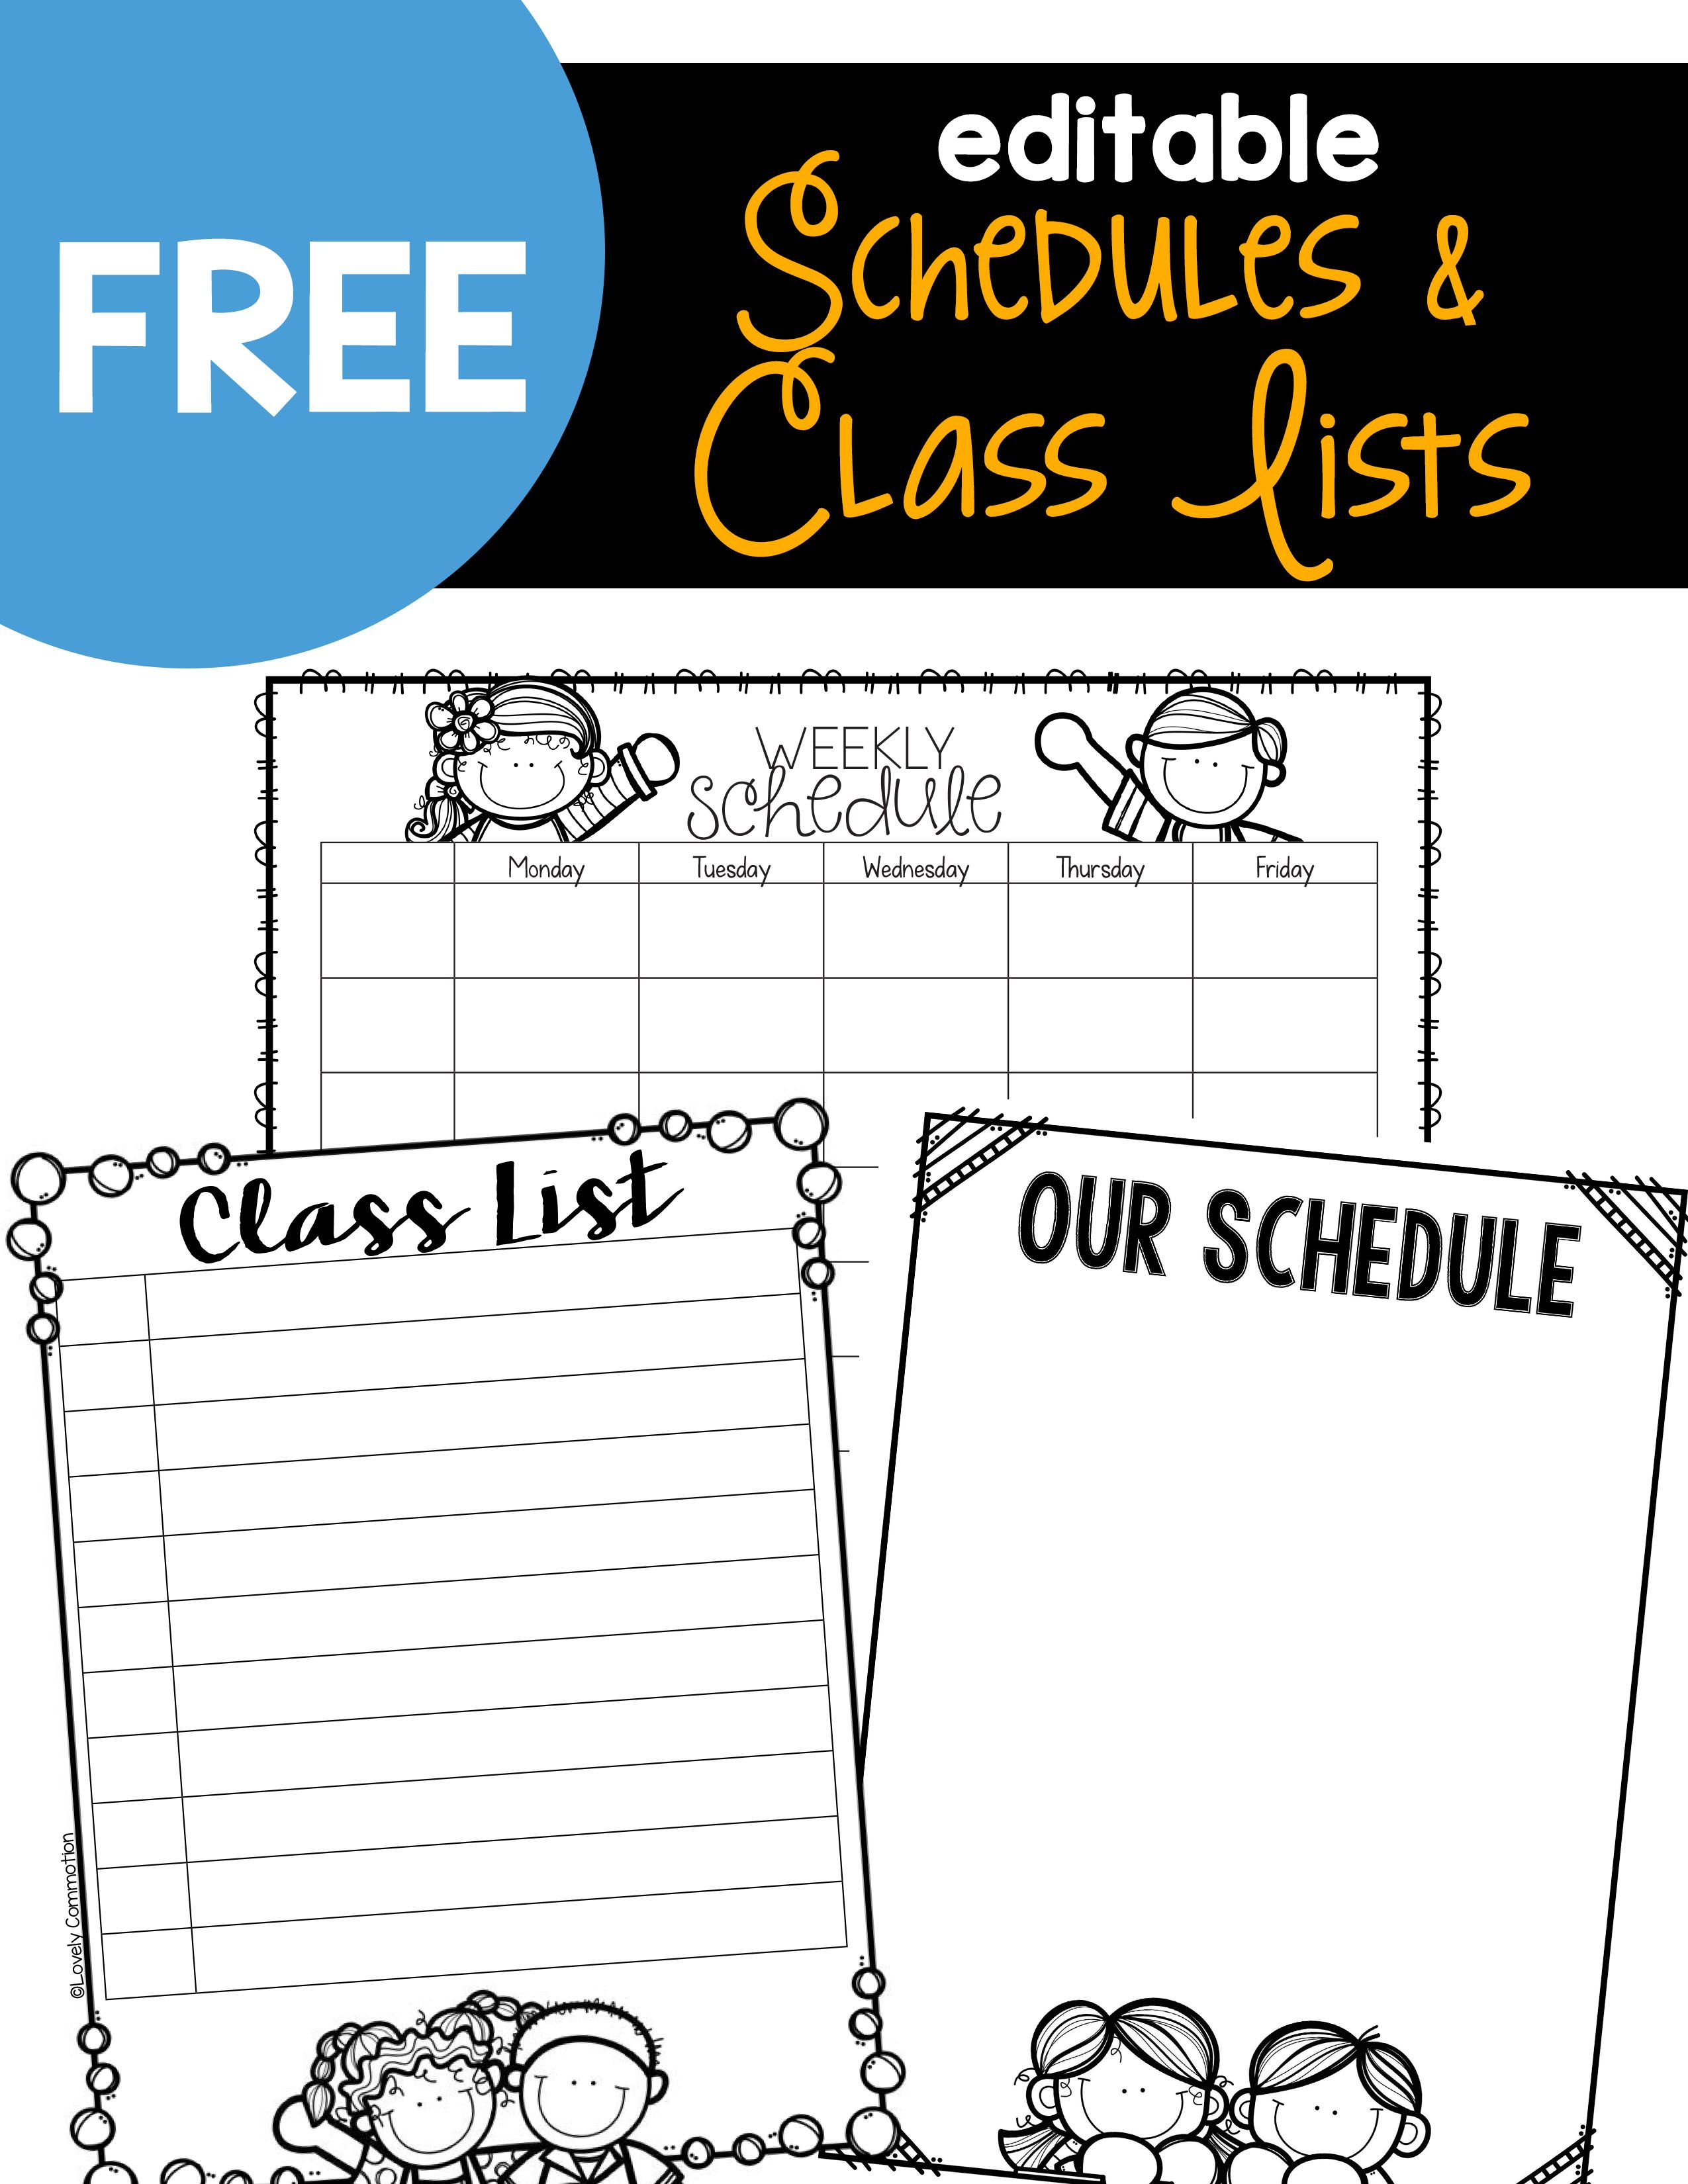 Editable Schedules  Class Lists  Free School And Teacher